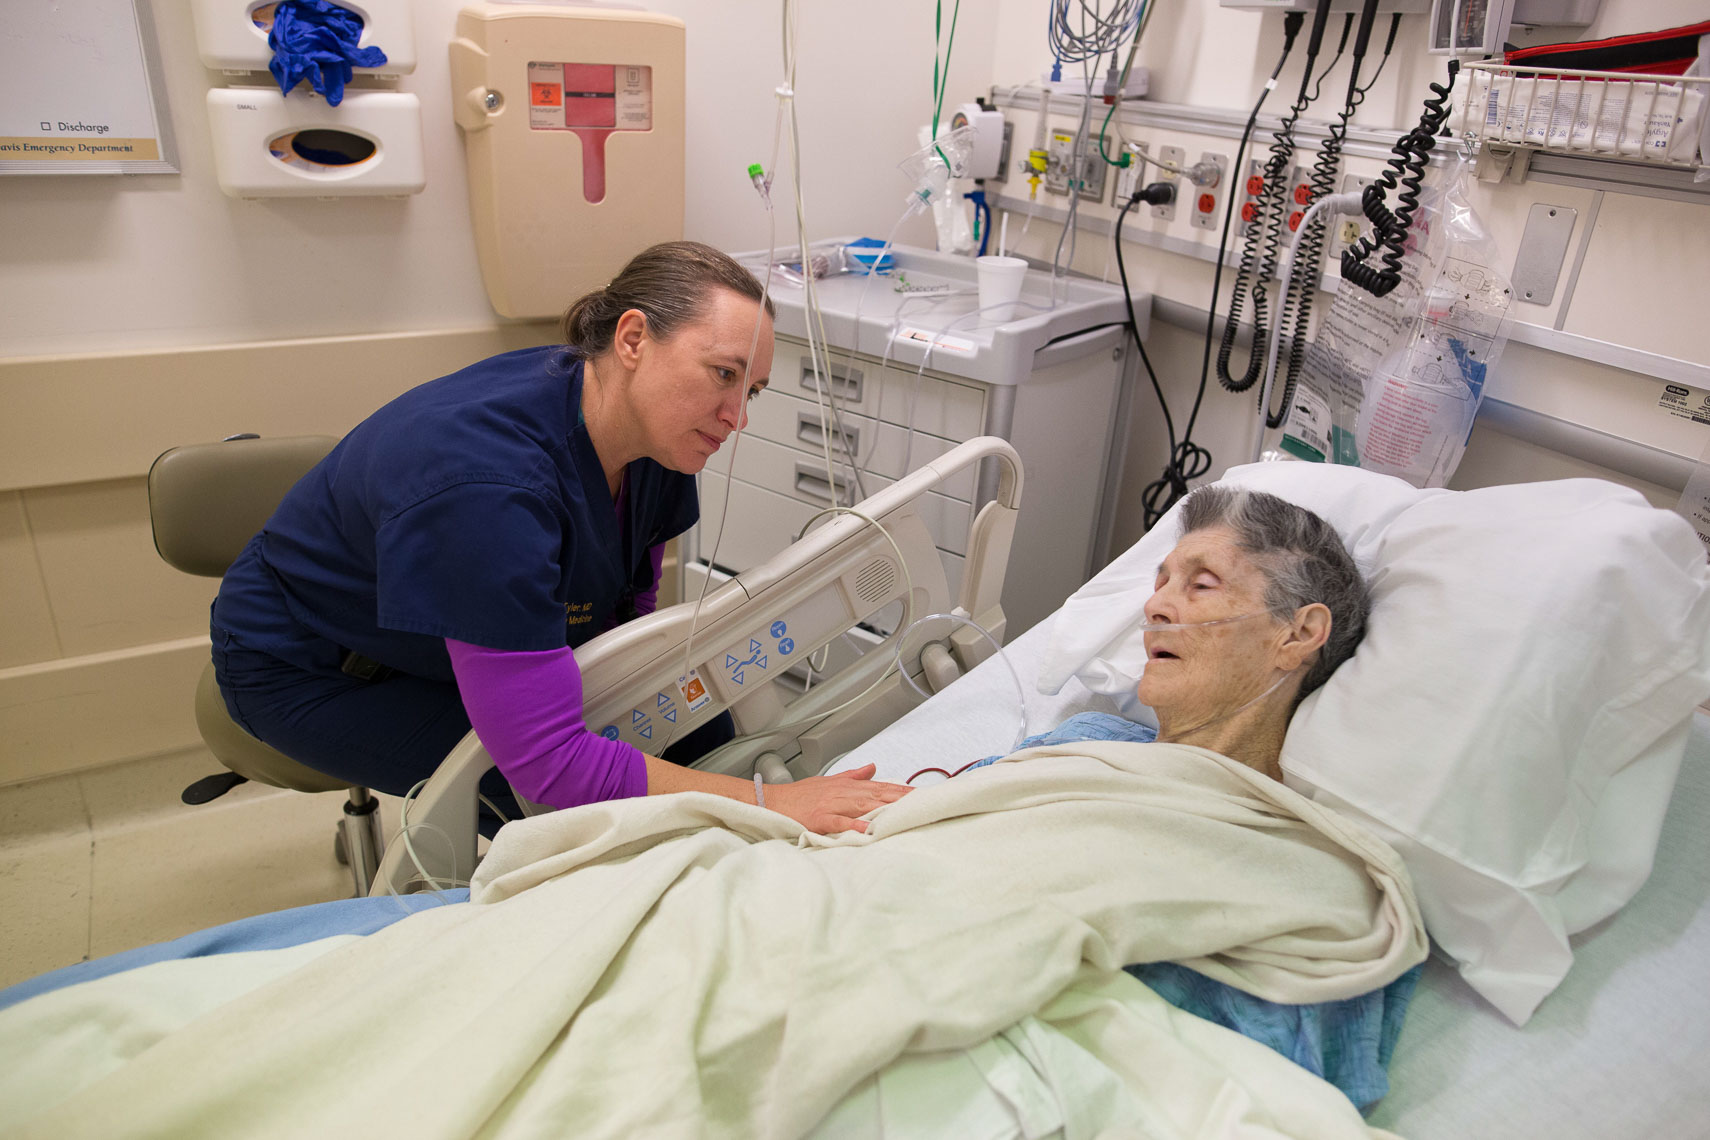 A Nurse Comforts a Patient in the Emergency Room